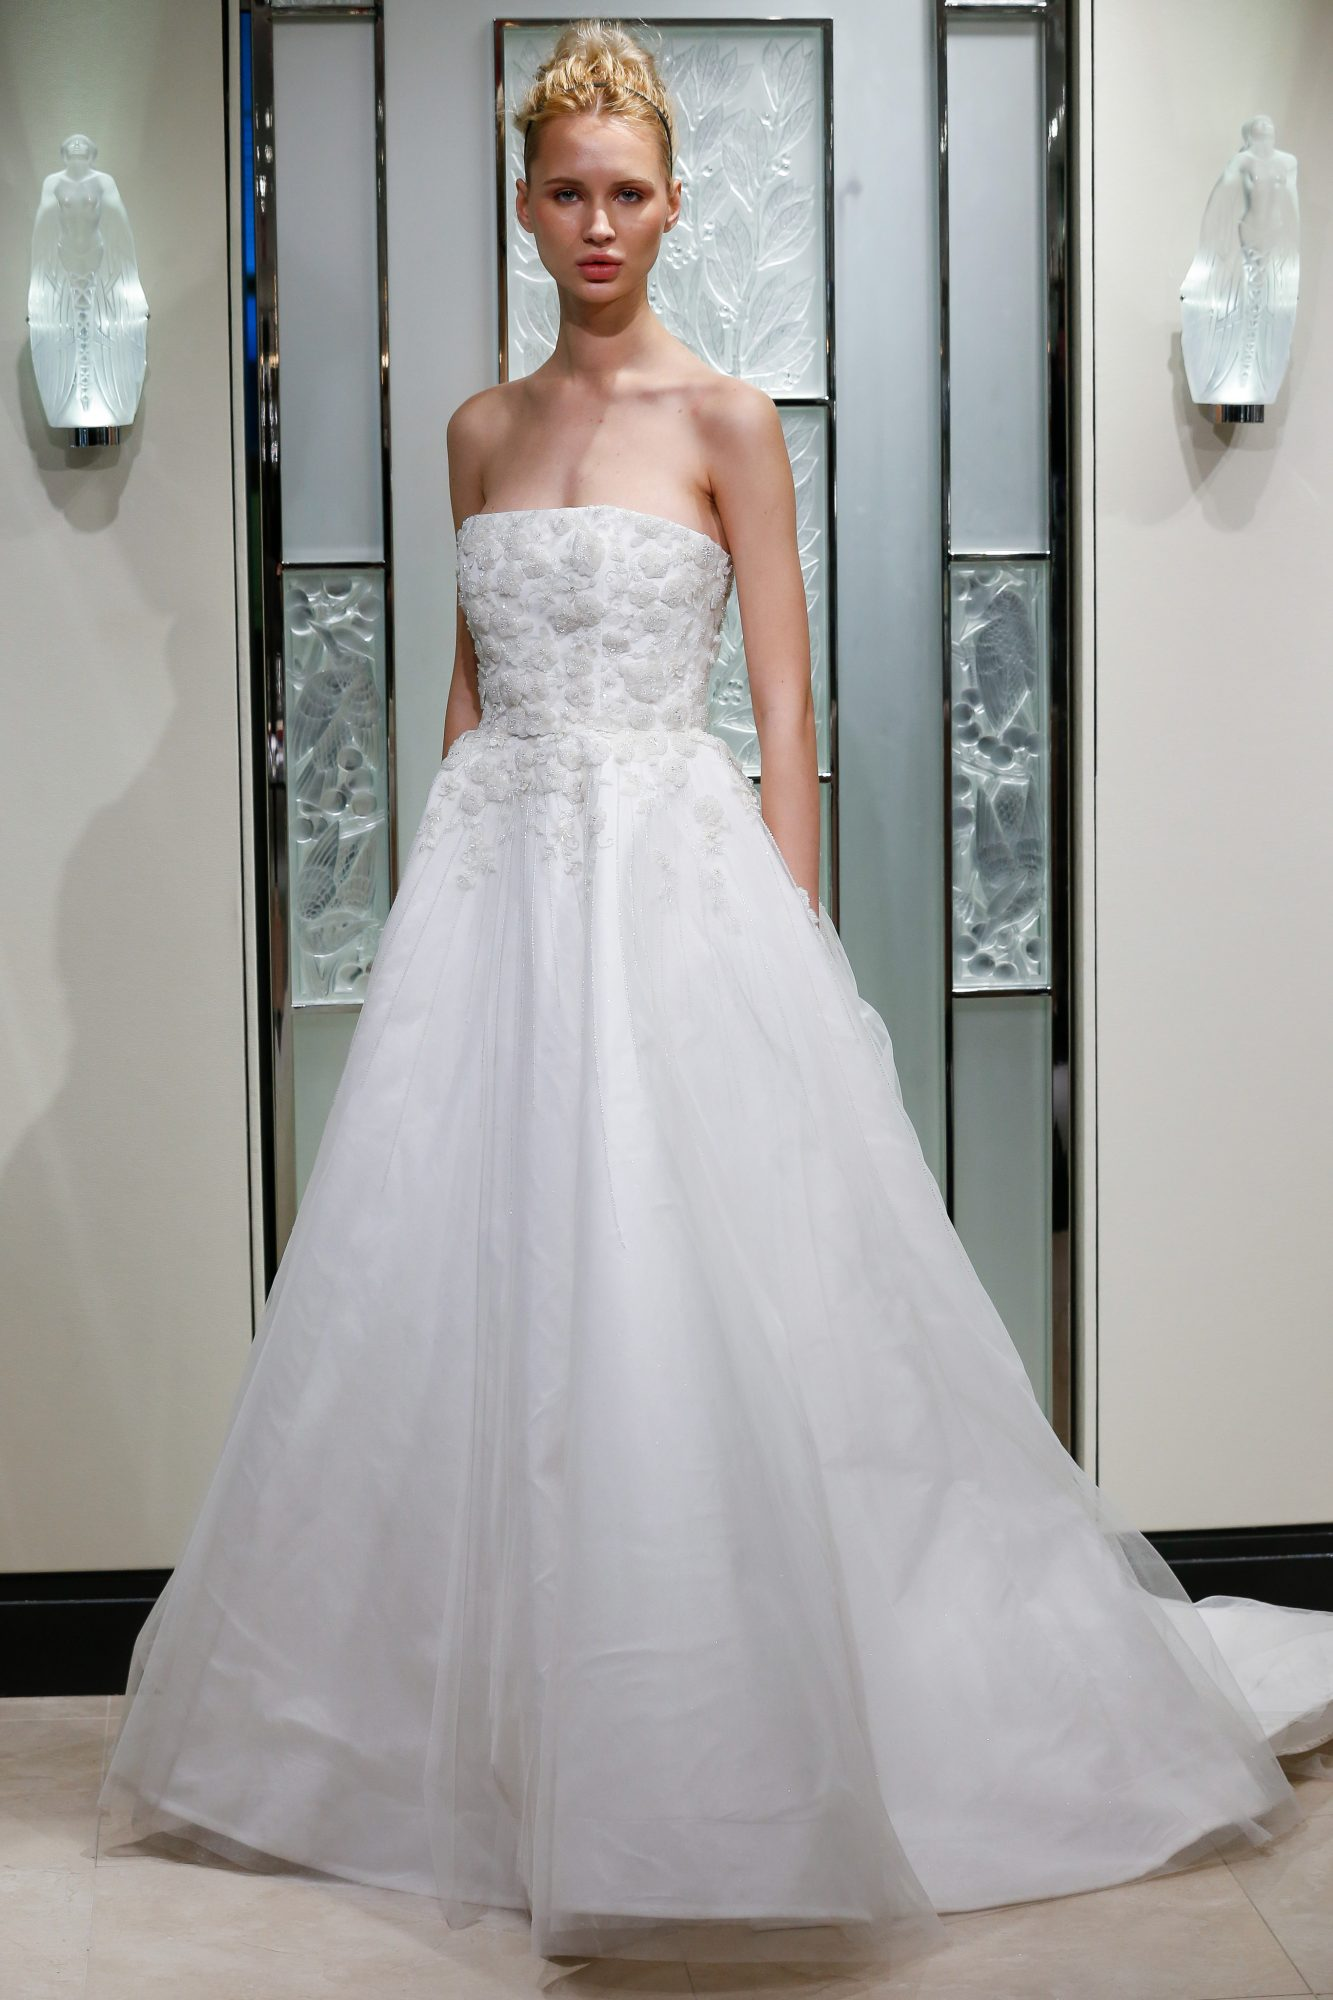 gracy accad strapless a-line wedding dress spring 2020